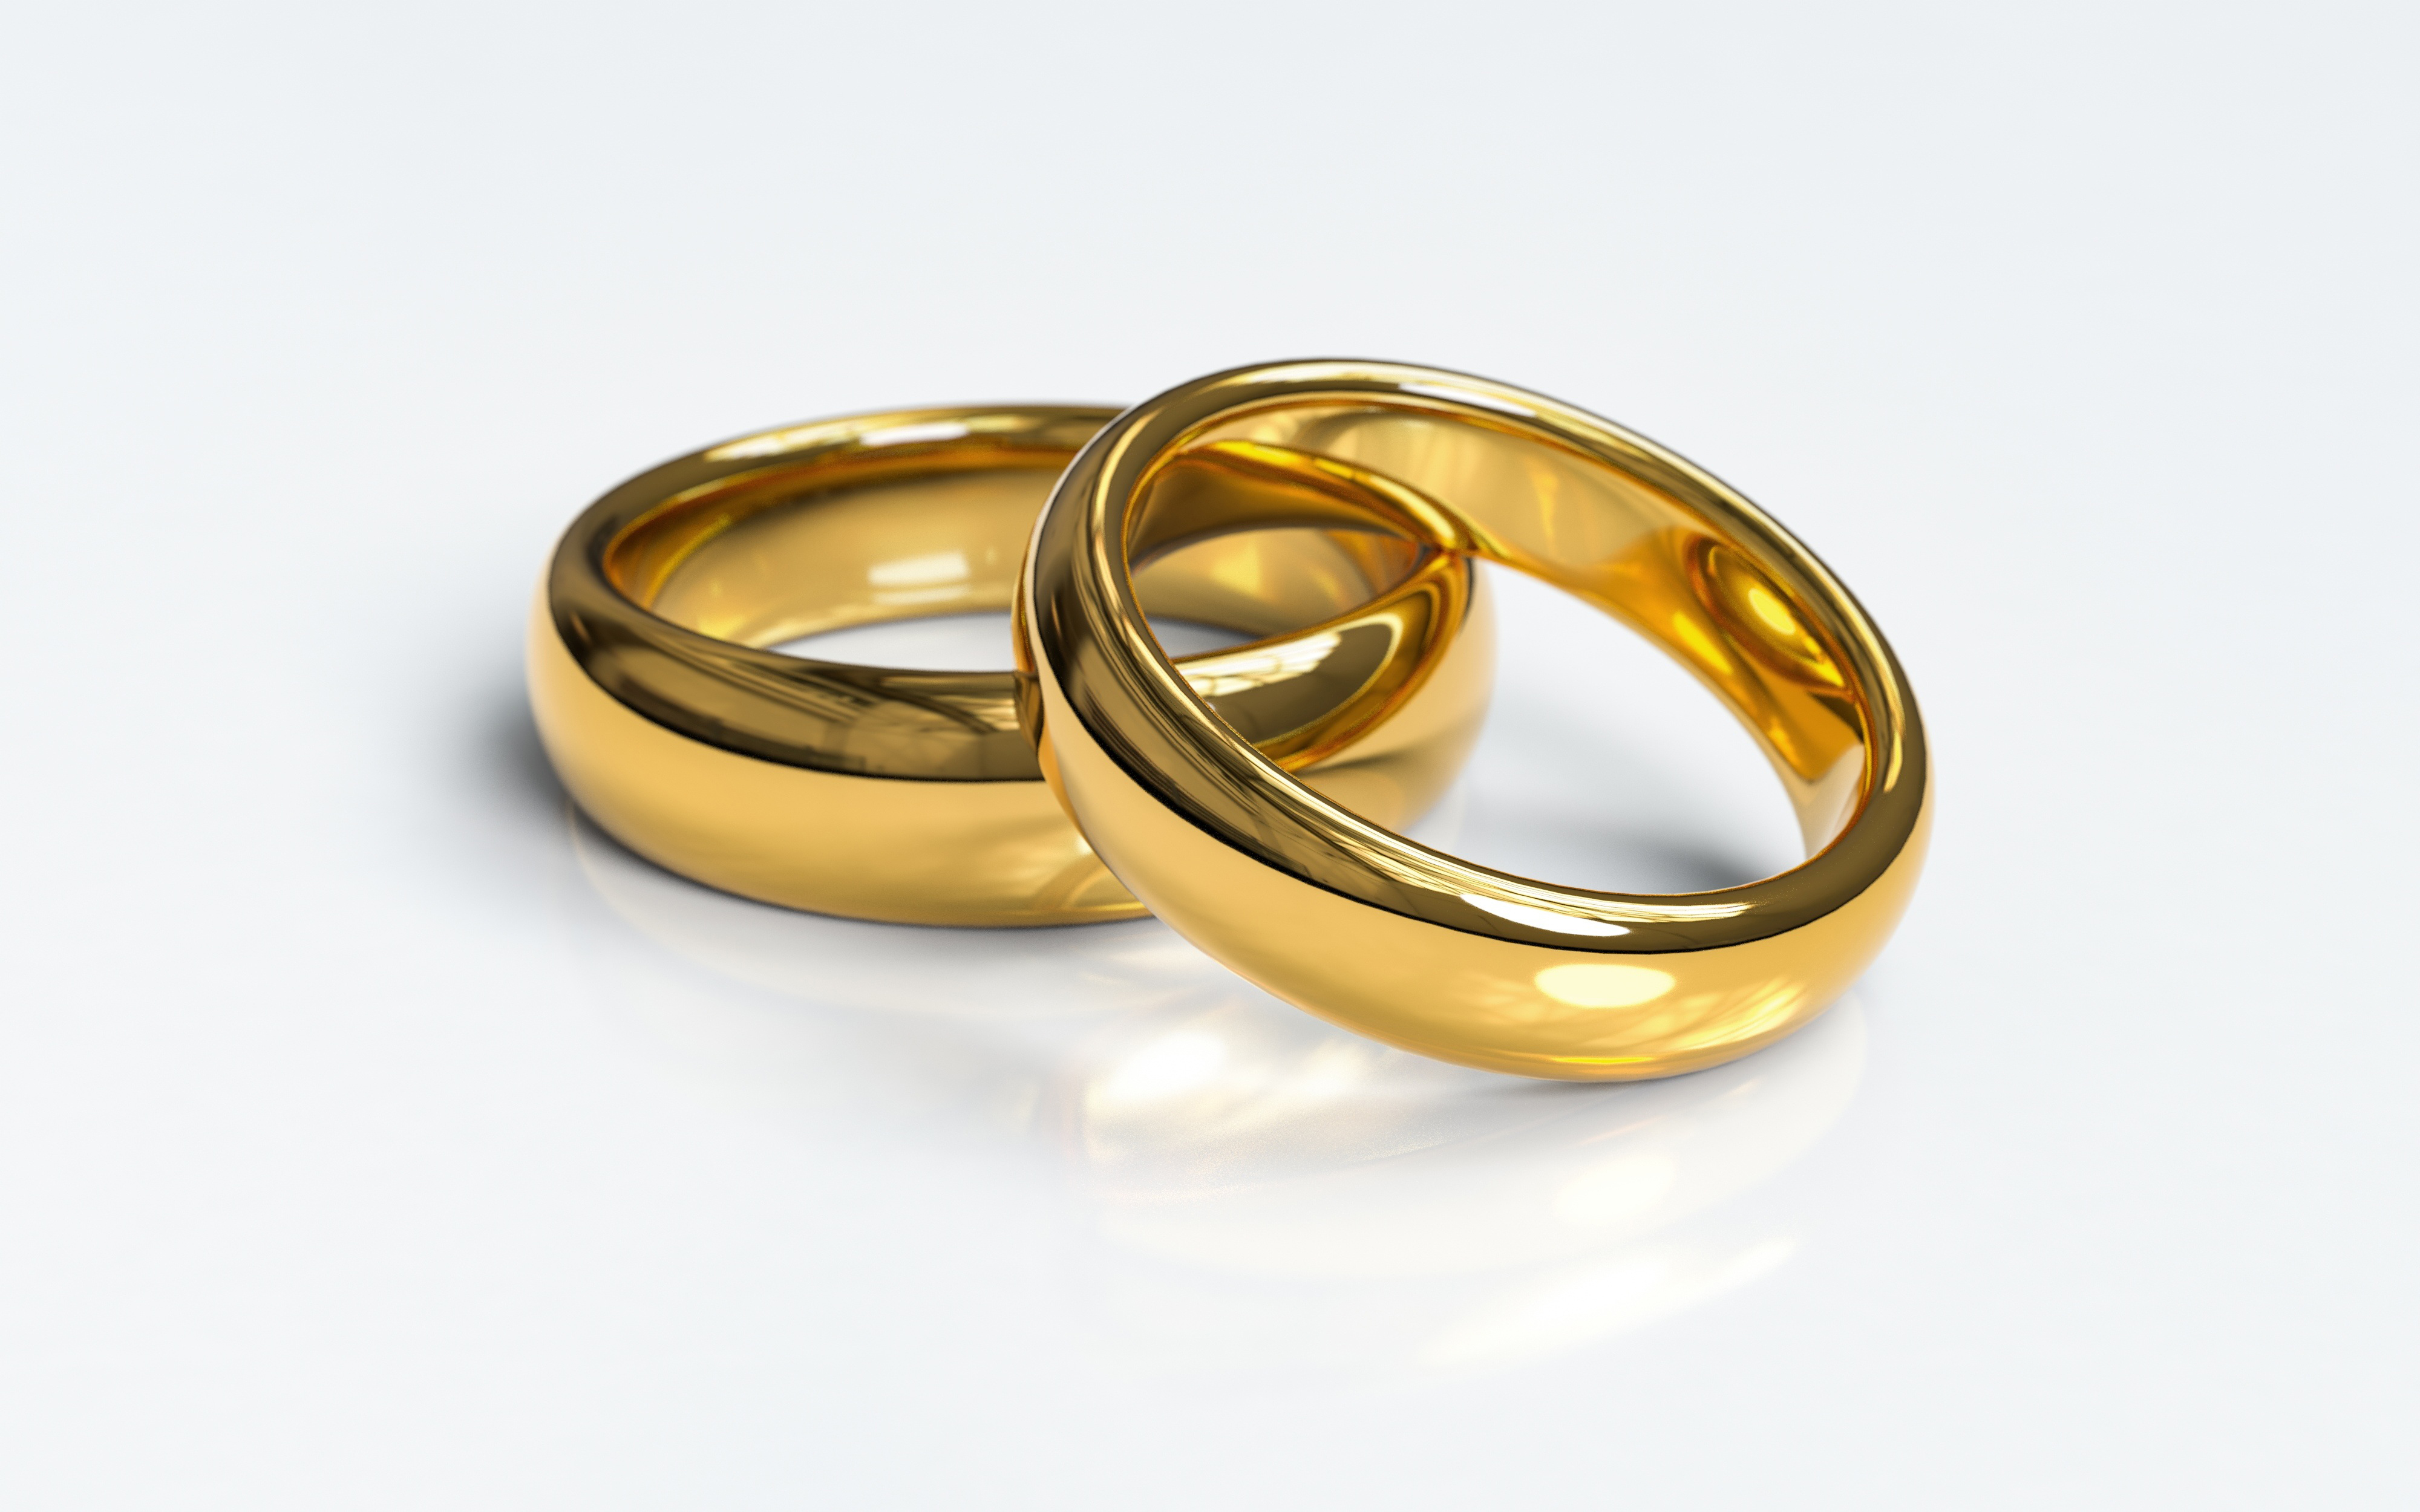 Wedding rings, gold, jewellery, marriage